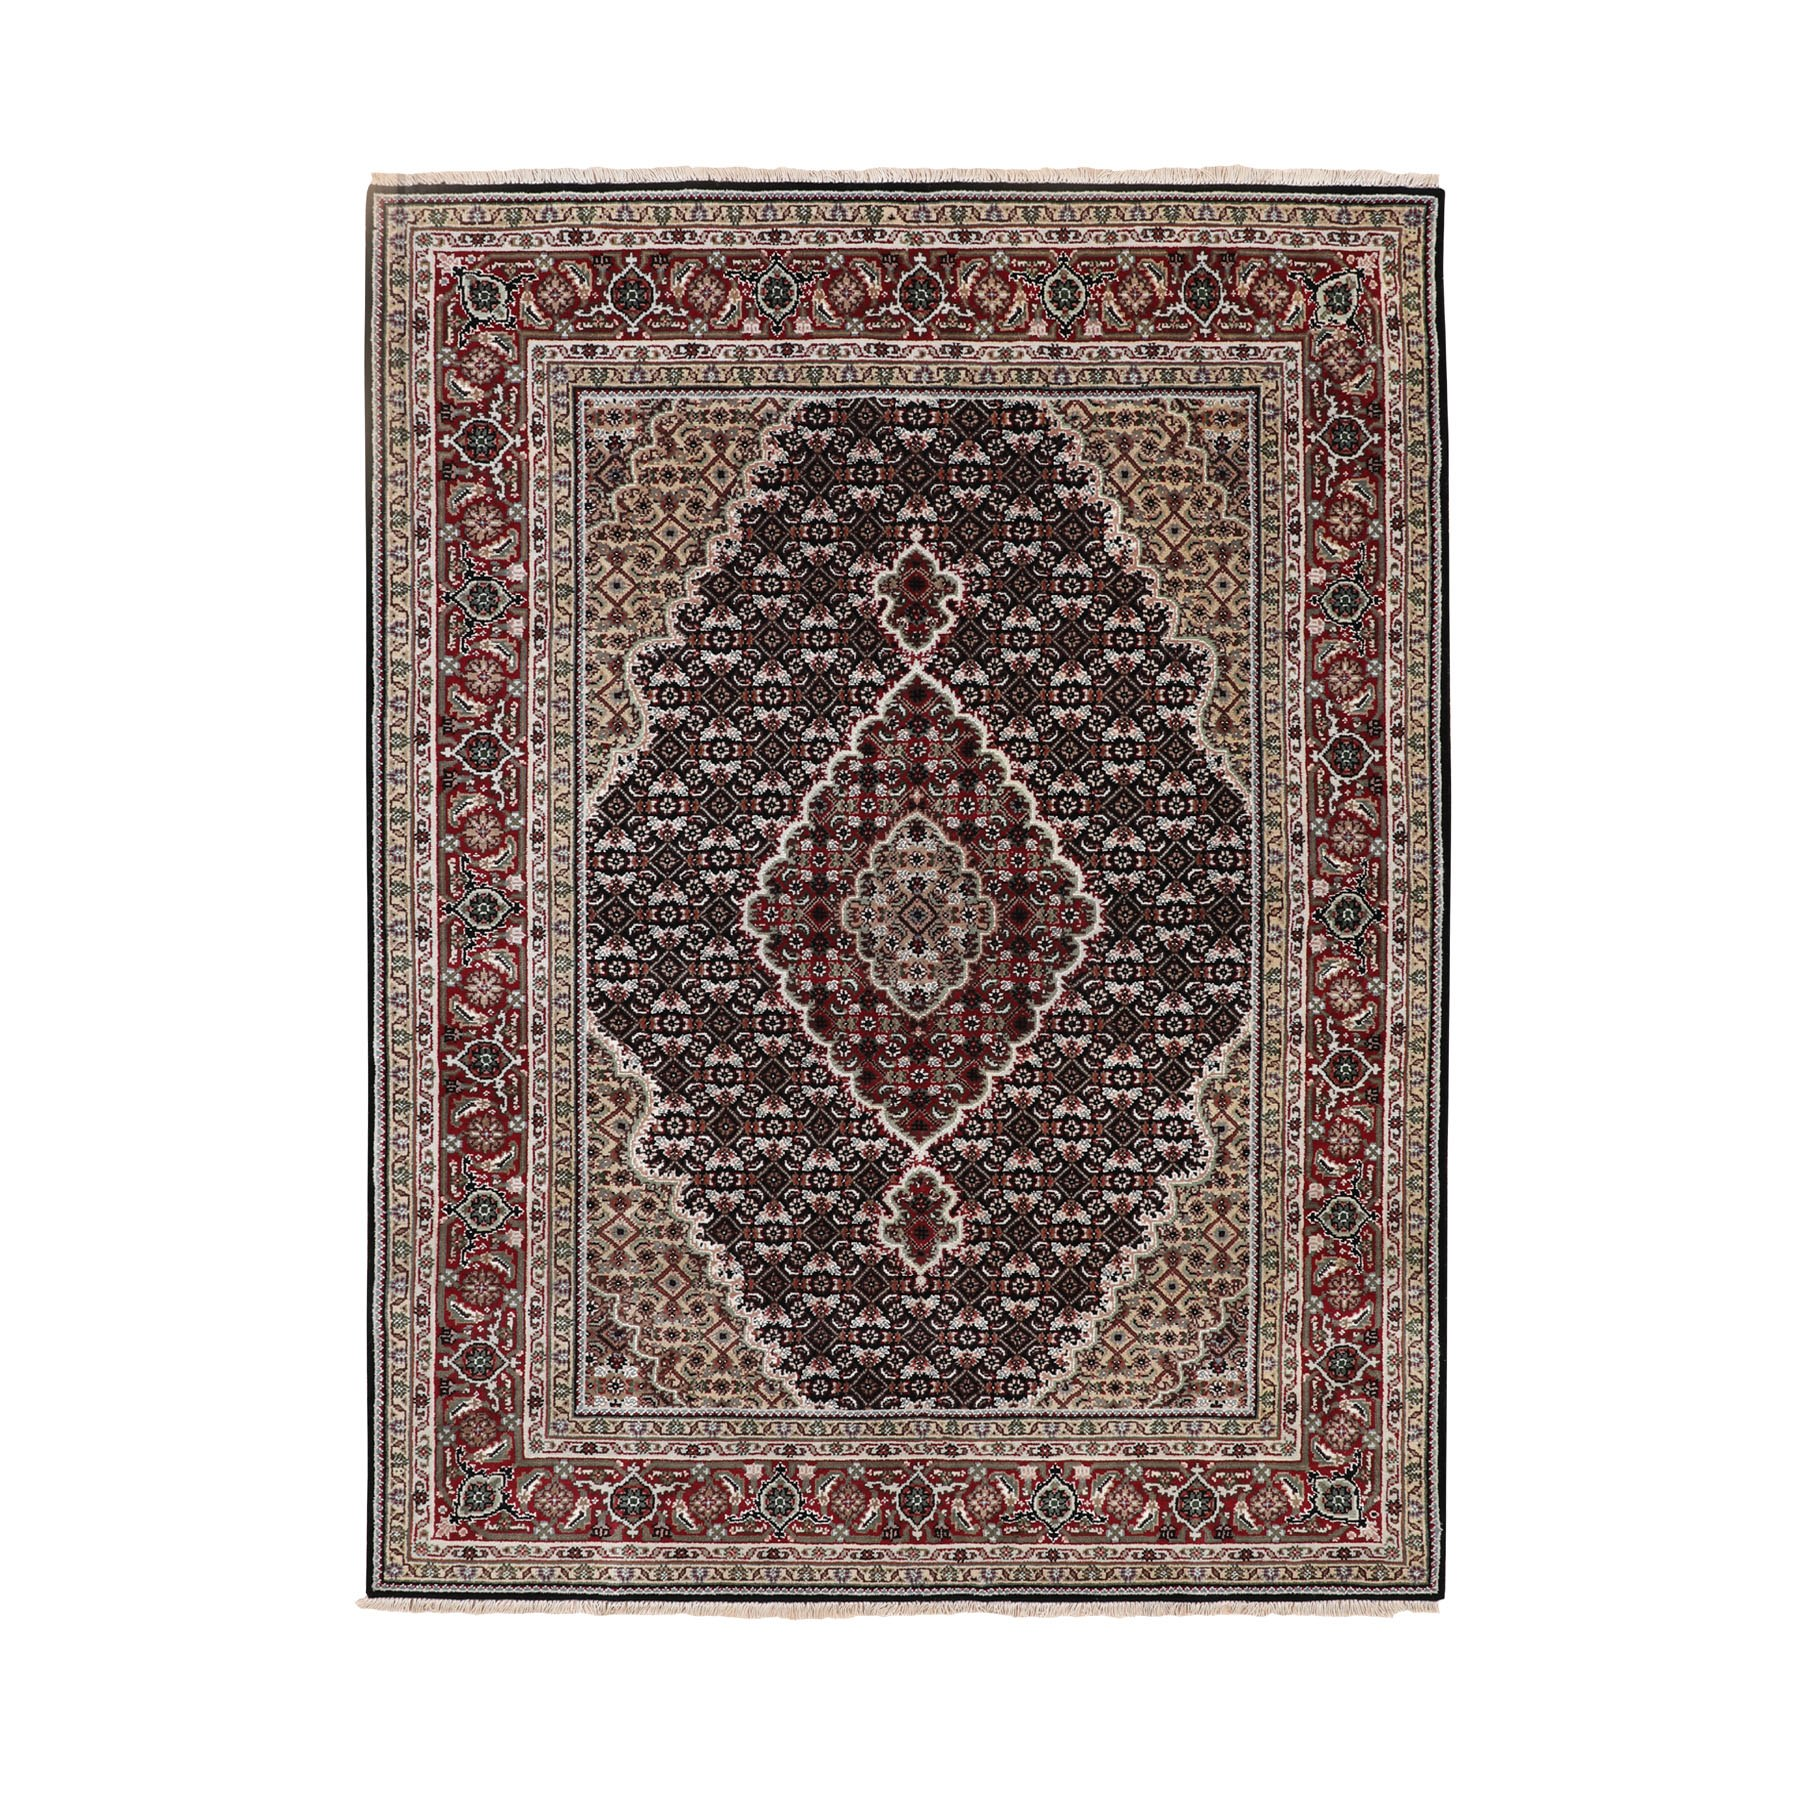 Pirniakan Collection Hand Knotted Black Rug No: 1116658